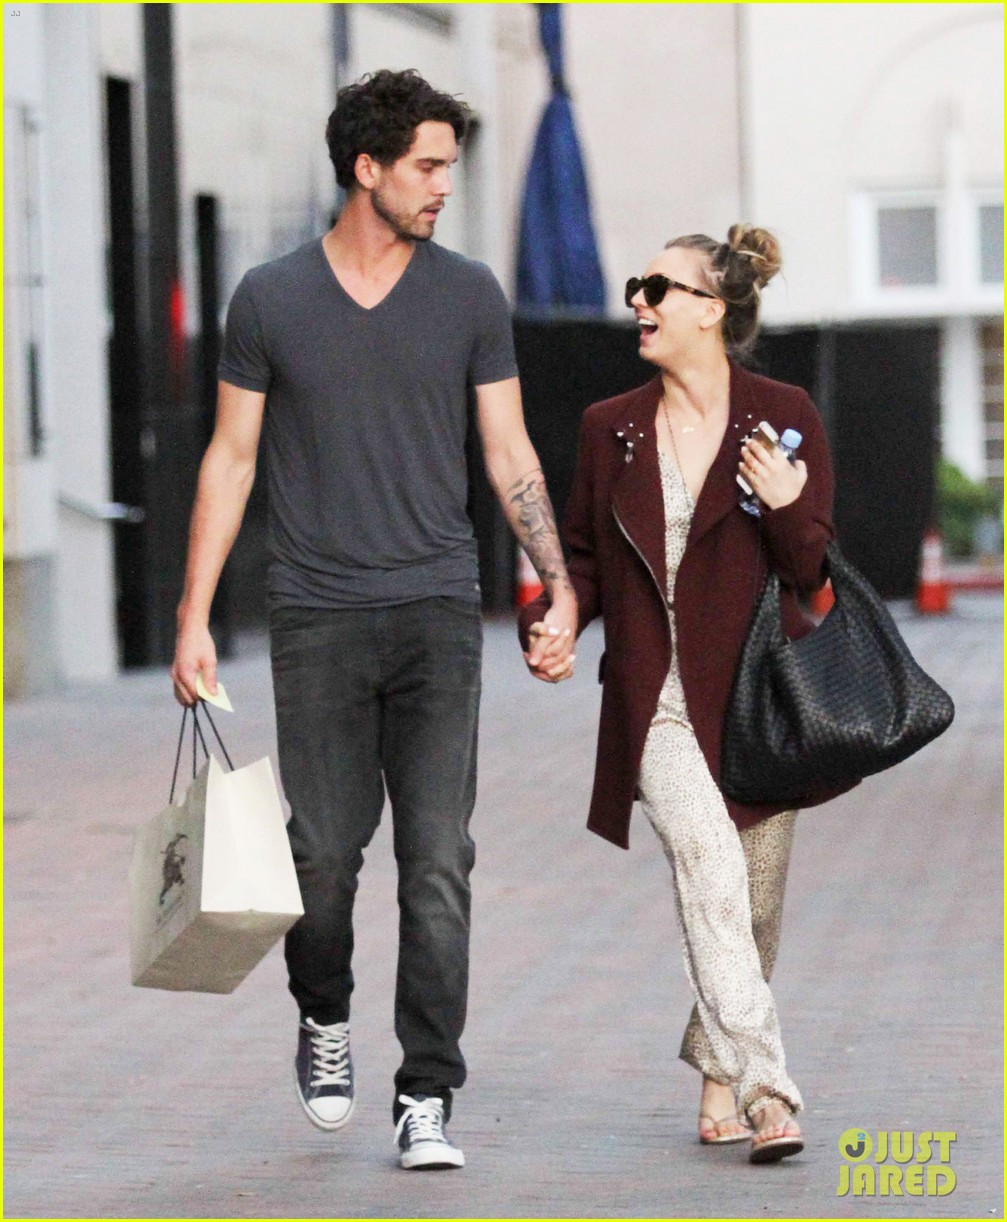 kaley cuoco steps out with ryan sweeting after the pcas 05